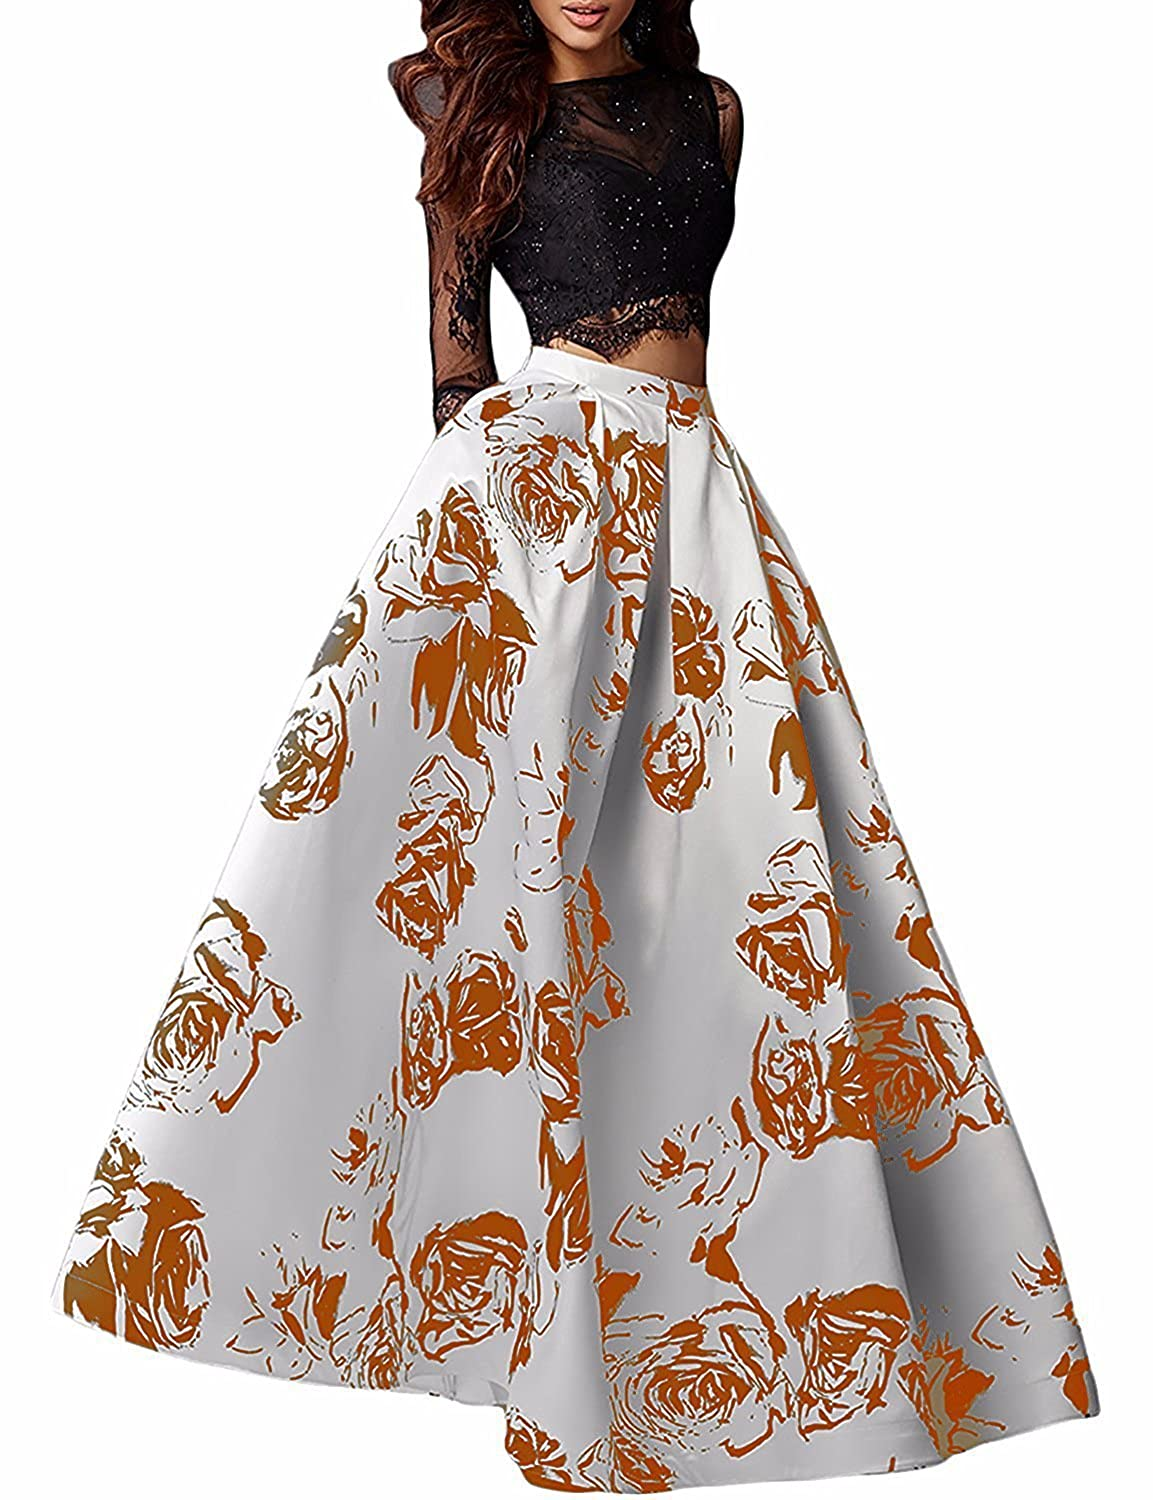 orange Yiweir Women's Two Piece Prom Dresses 2018 Long Floral Print Lace Beads Formal Gowns YP038